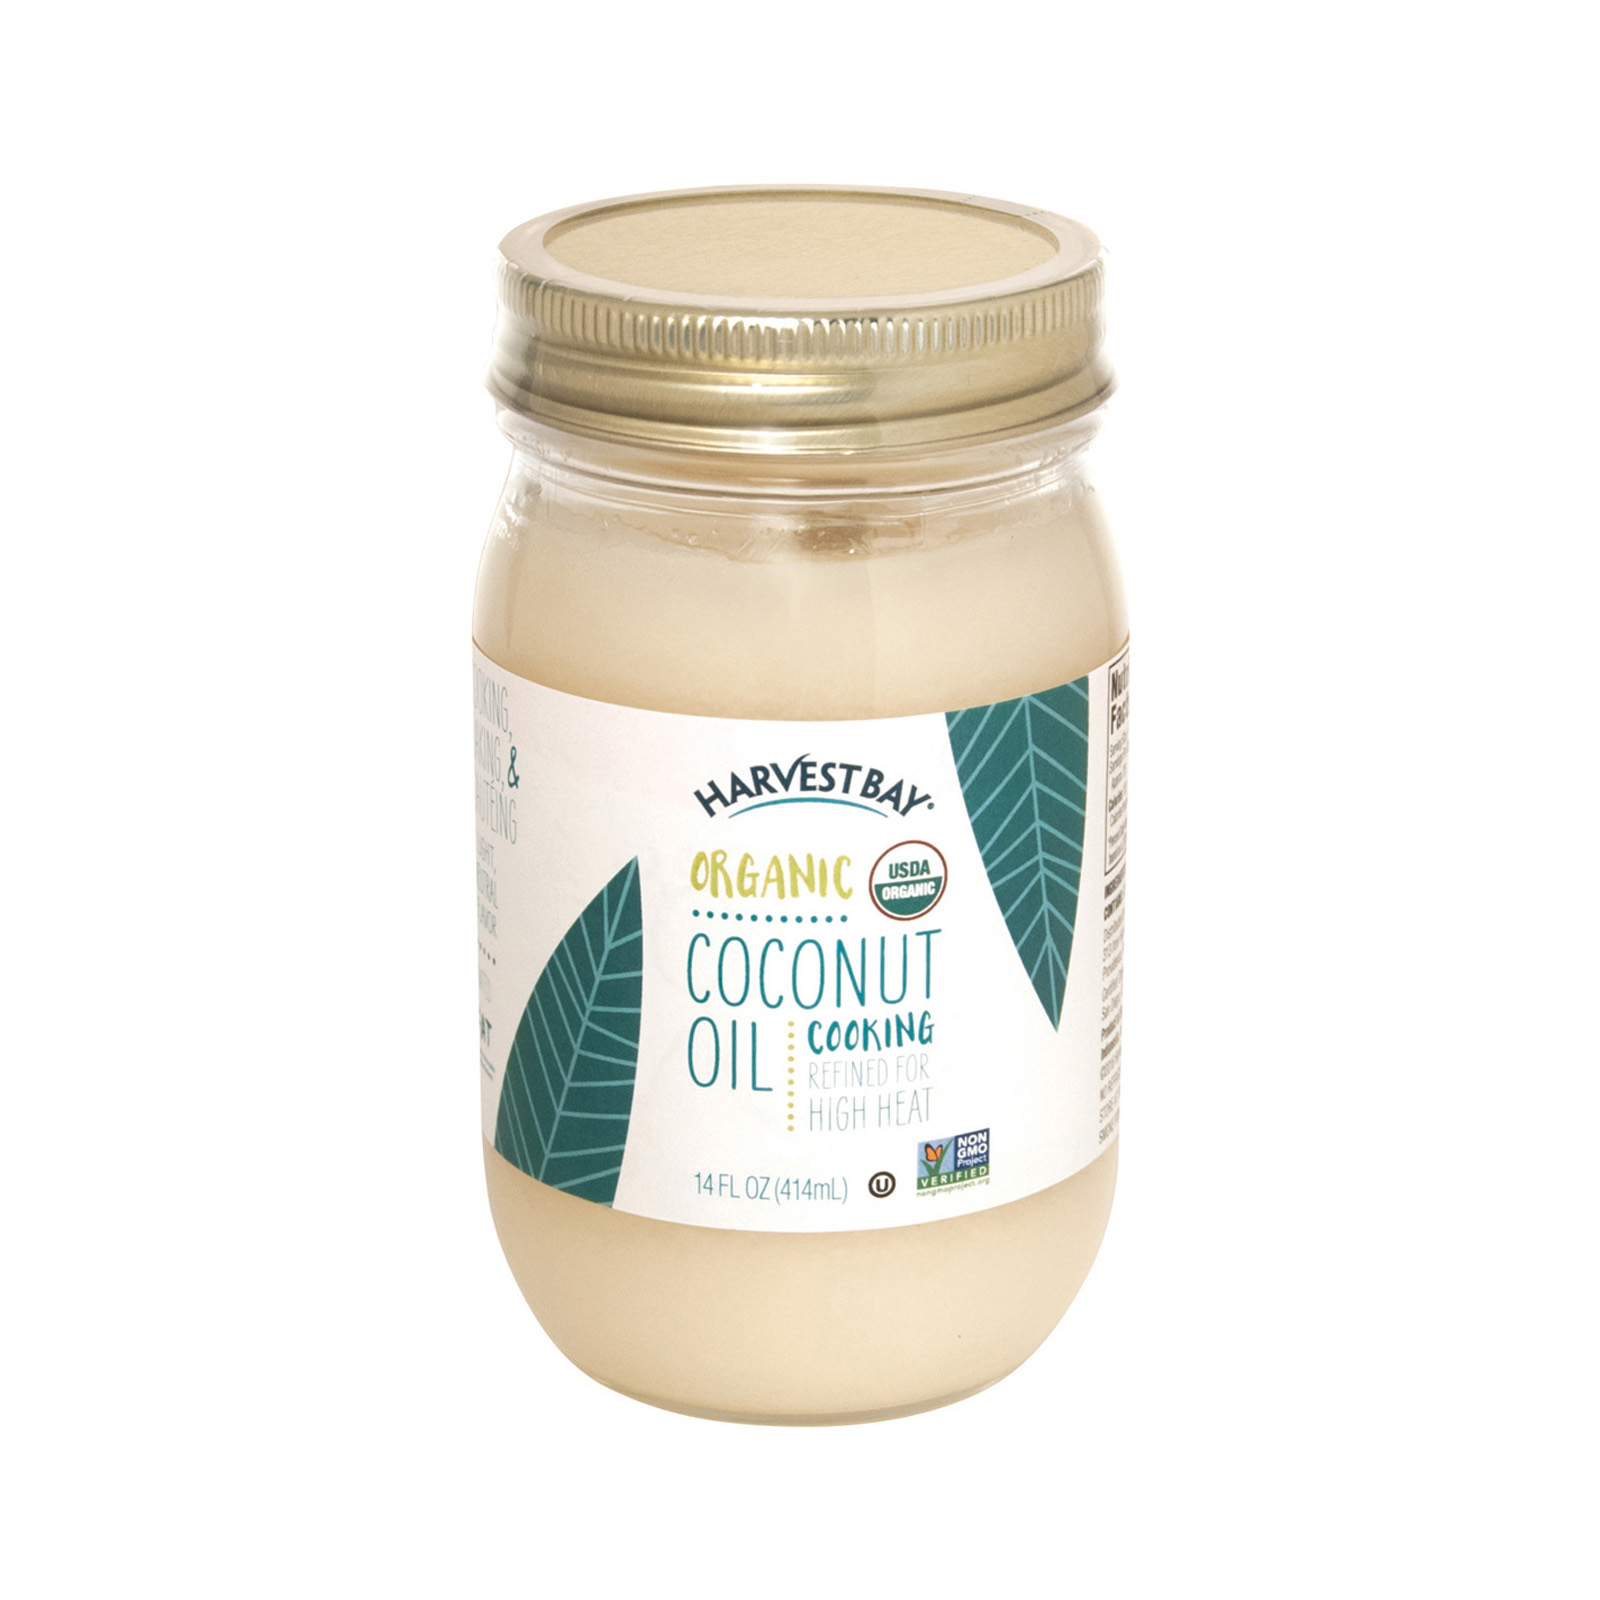 Harvest Bay Organic Coconut Oil - Extra Virgin Refined - Case Of 6 - 14 Fl Oz.